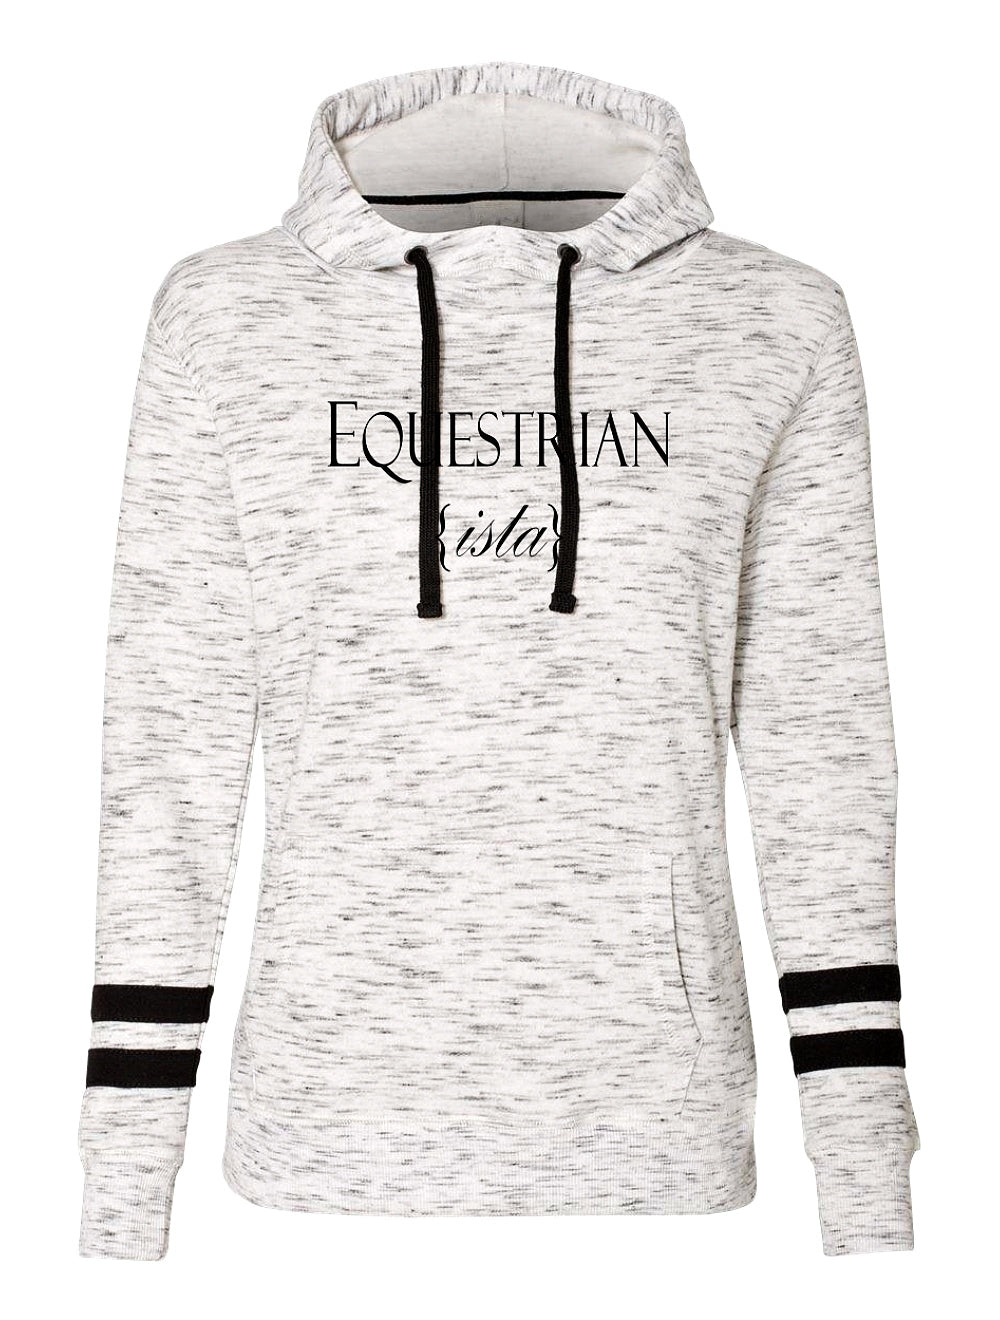 Women's  Varsity Equestrian Sport Luxe Riding Hoodie Fleece in Black by EQUESTRIANISTA Brand Apparel and Accessories.